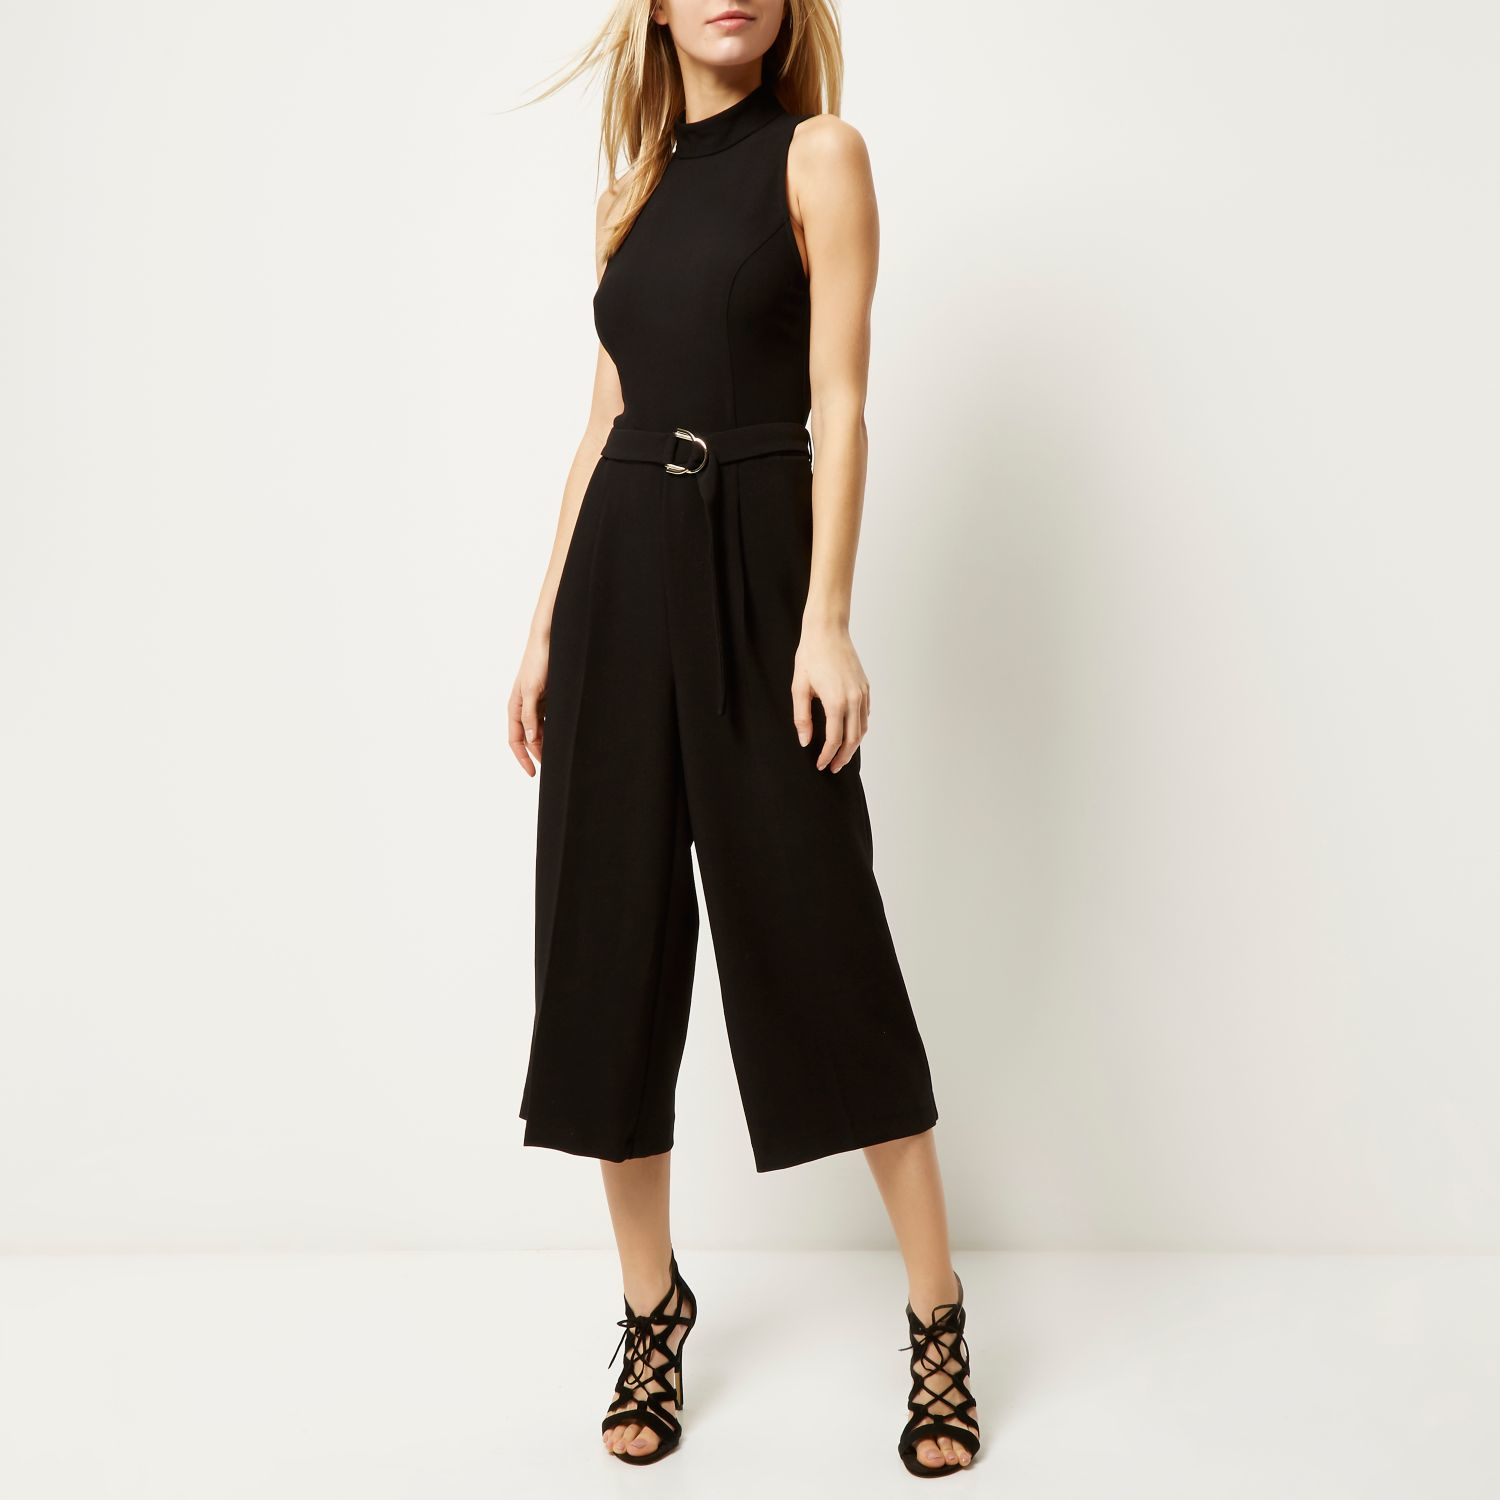 3824c73ccee Lyst - River Island Black Smart D-ring Culotte Jumpsuit in Black